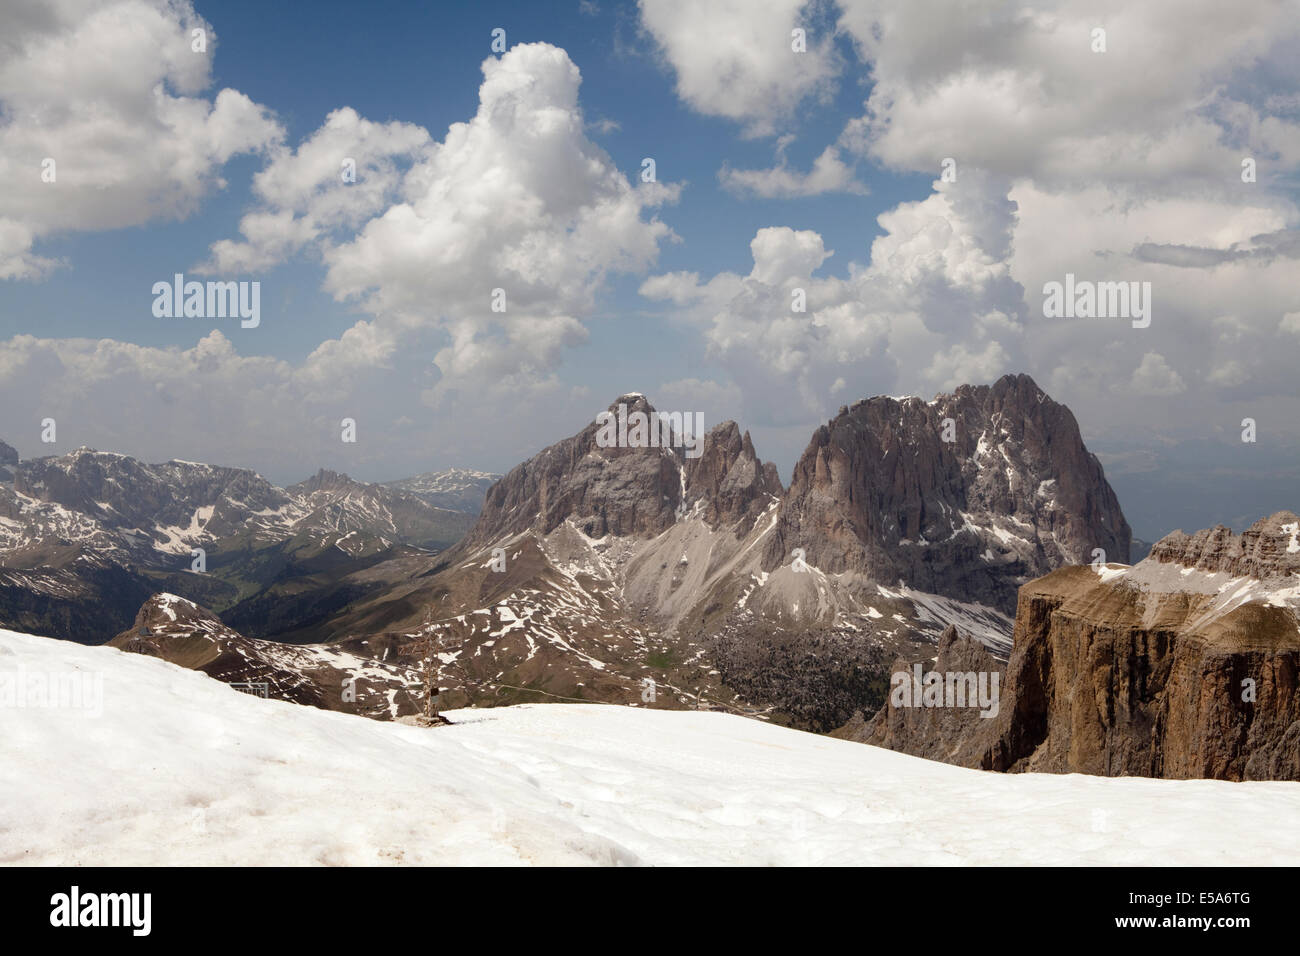 The Dolomite mountains viewed from La Terraza Delle Dolomiti, a restaurant reached by cable car. Pordoi Pass, Italy - Stock Image